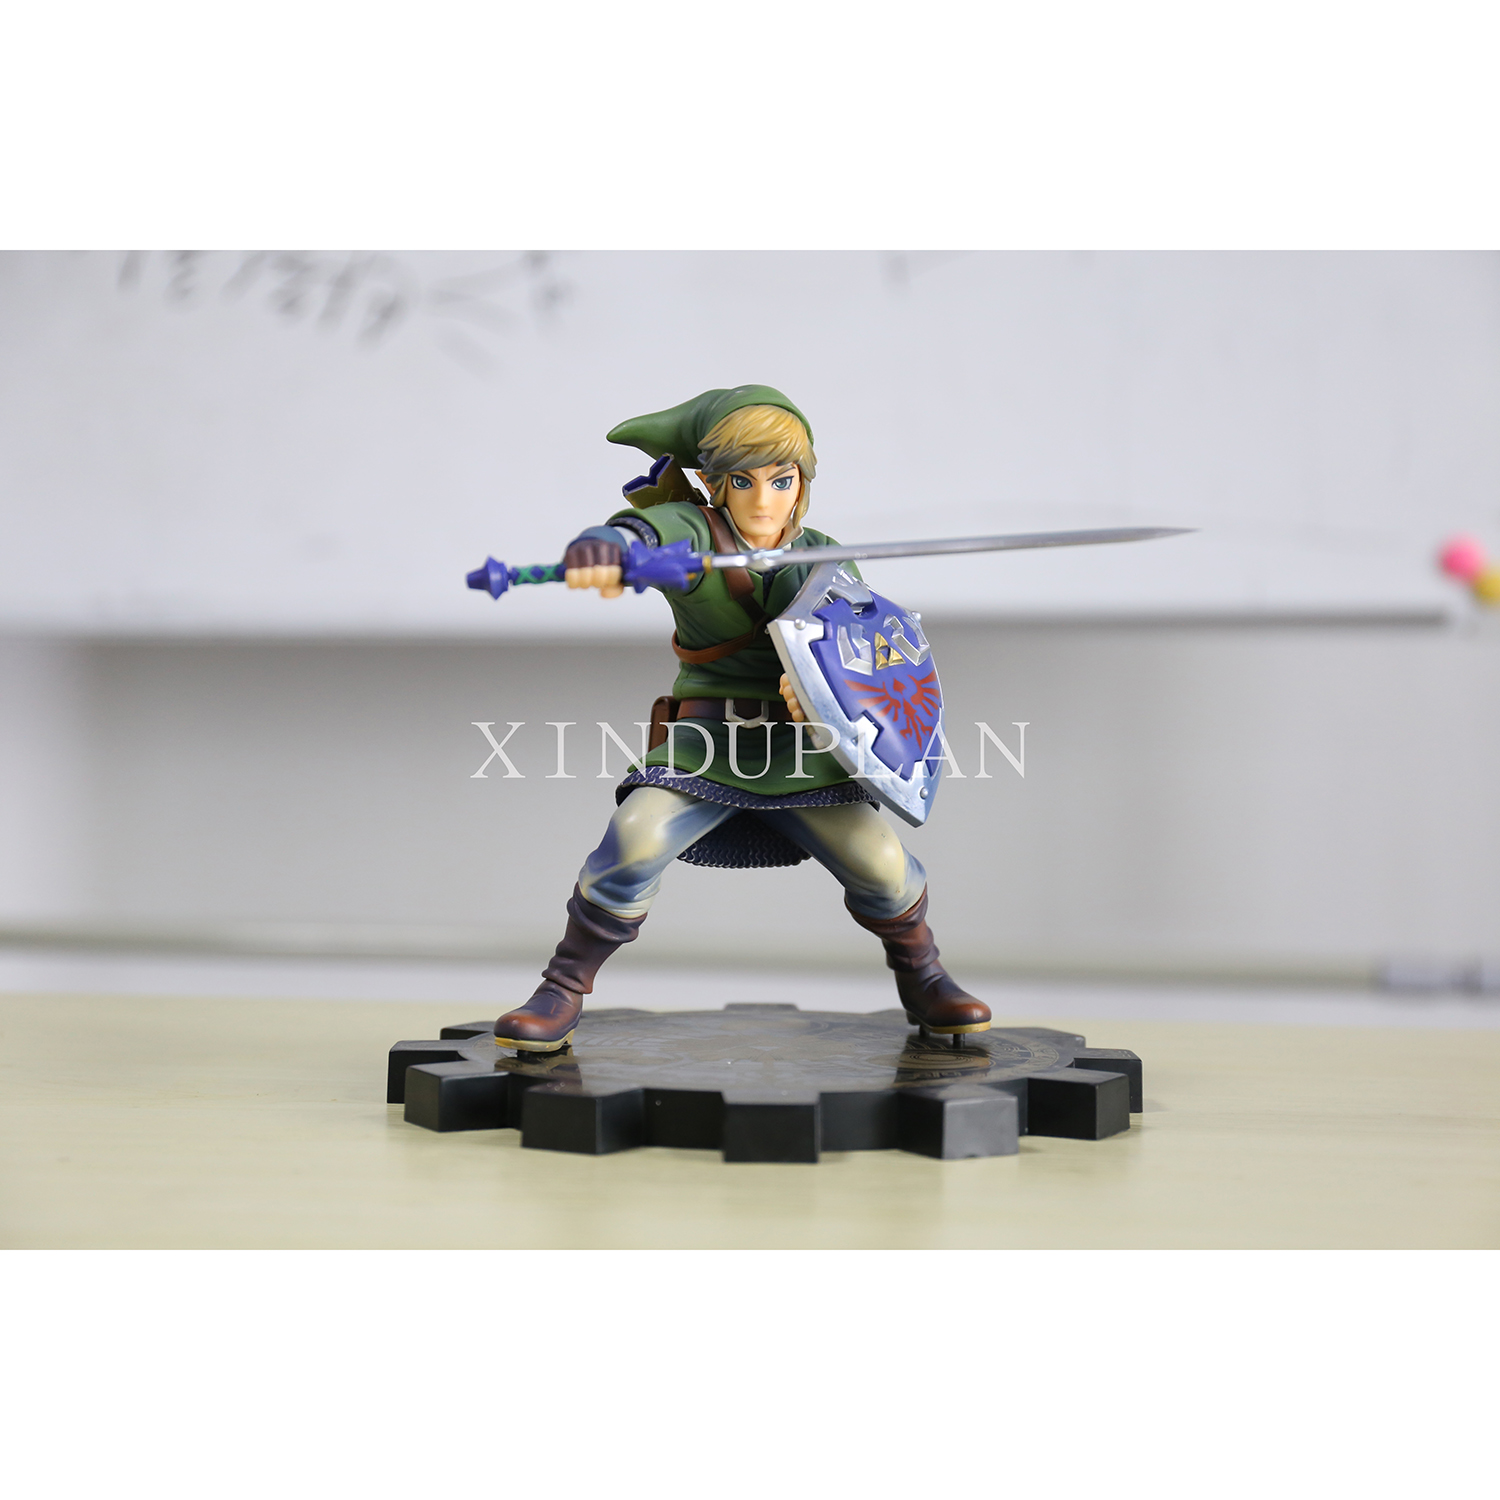 XINDUPLAN Zelda Link Legend of Zelda 1/7 Wind Waker Skyward Sword Action Figure Toys 20CM PVC Kids Gift Collection Model 0977 legend of zelda action figure toys 10cm pvc nintendo 3ds zelda manga figma zelda link vinyl doll